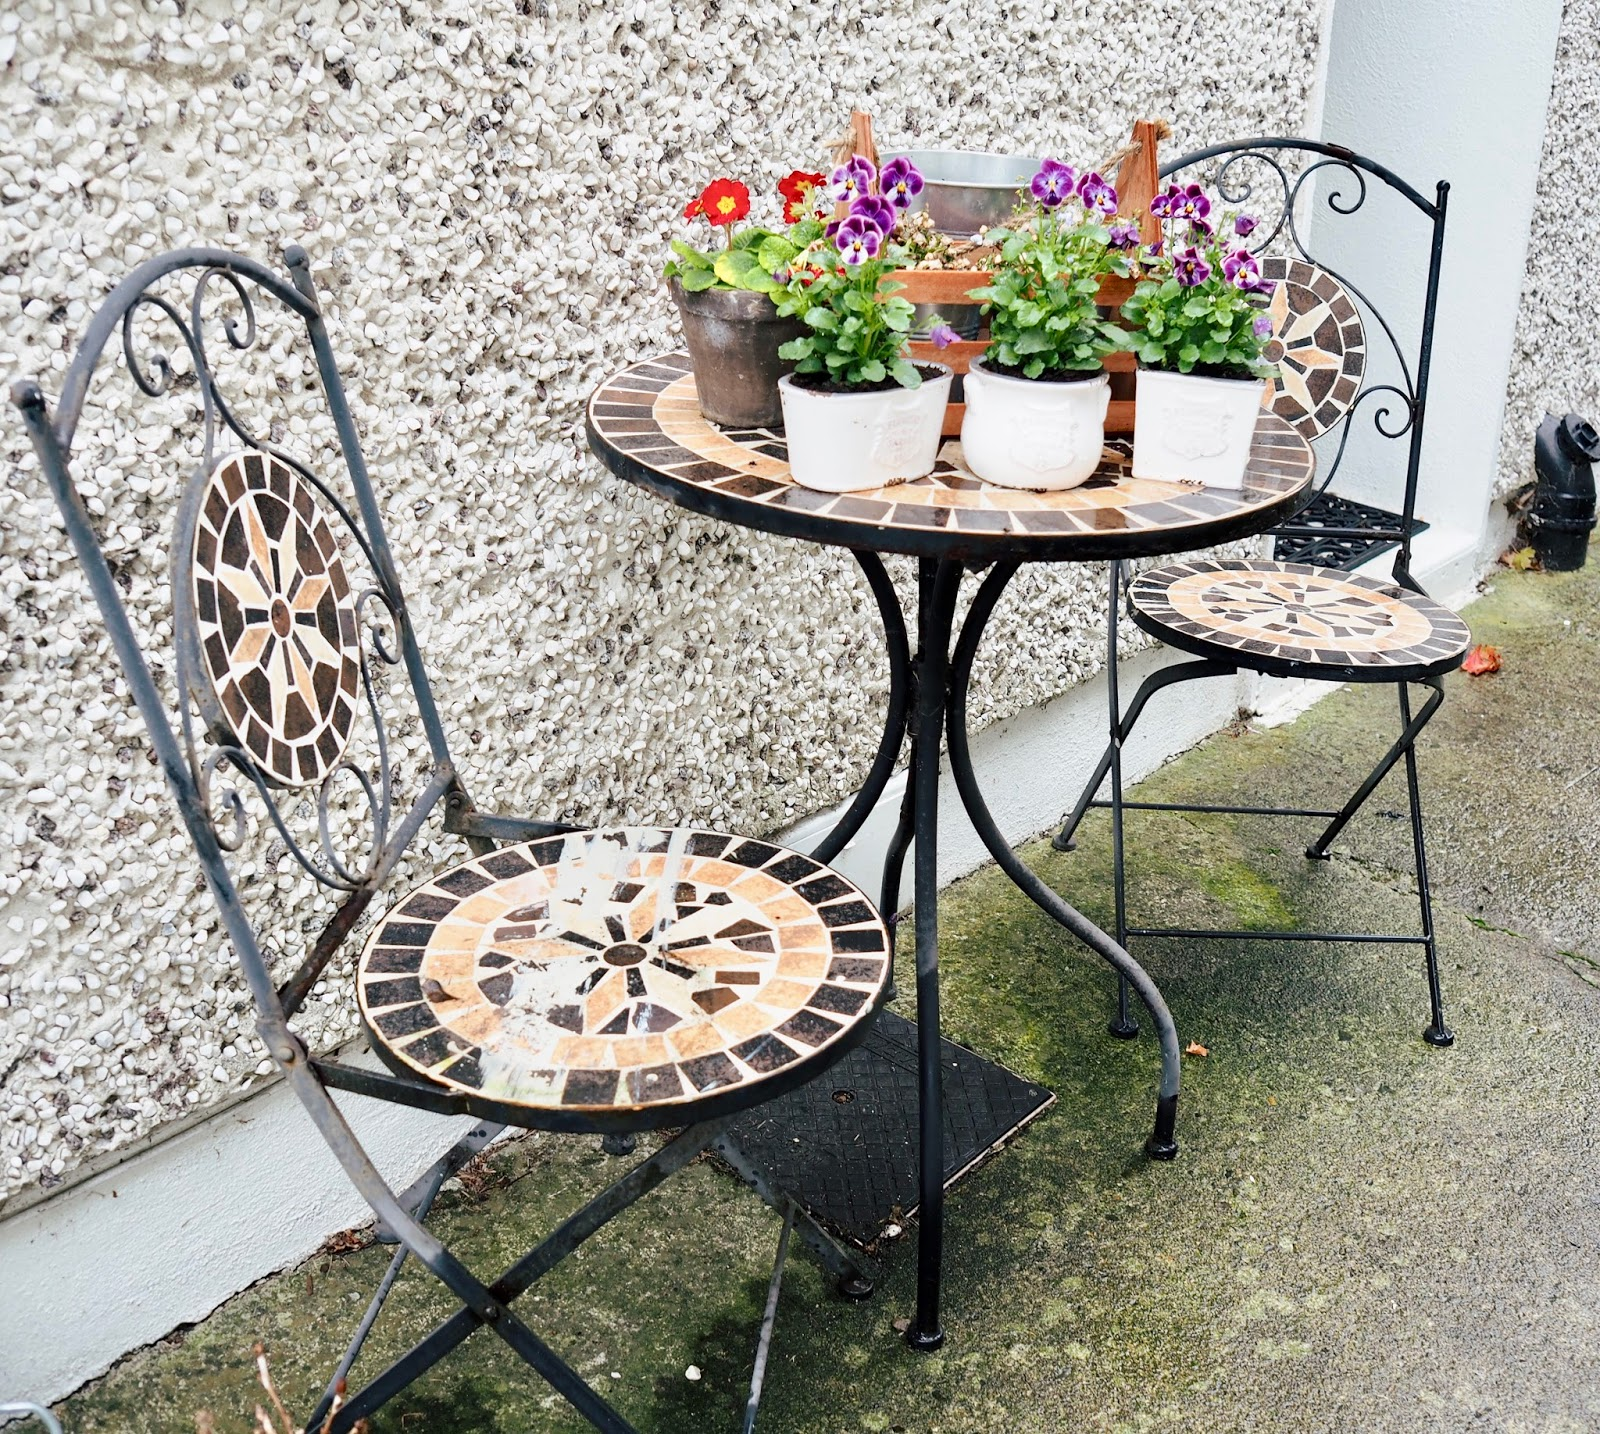 Painting rusty metal garden furniture - Dainty Dress Diaries